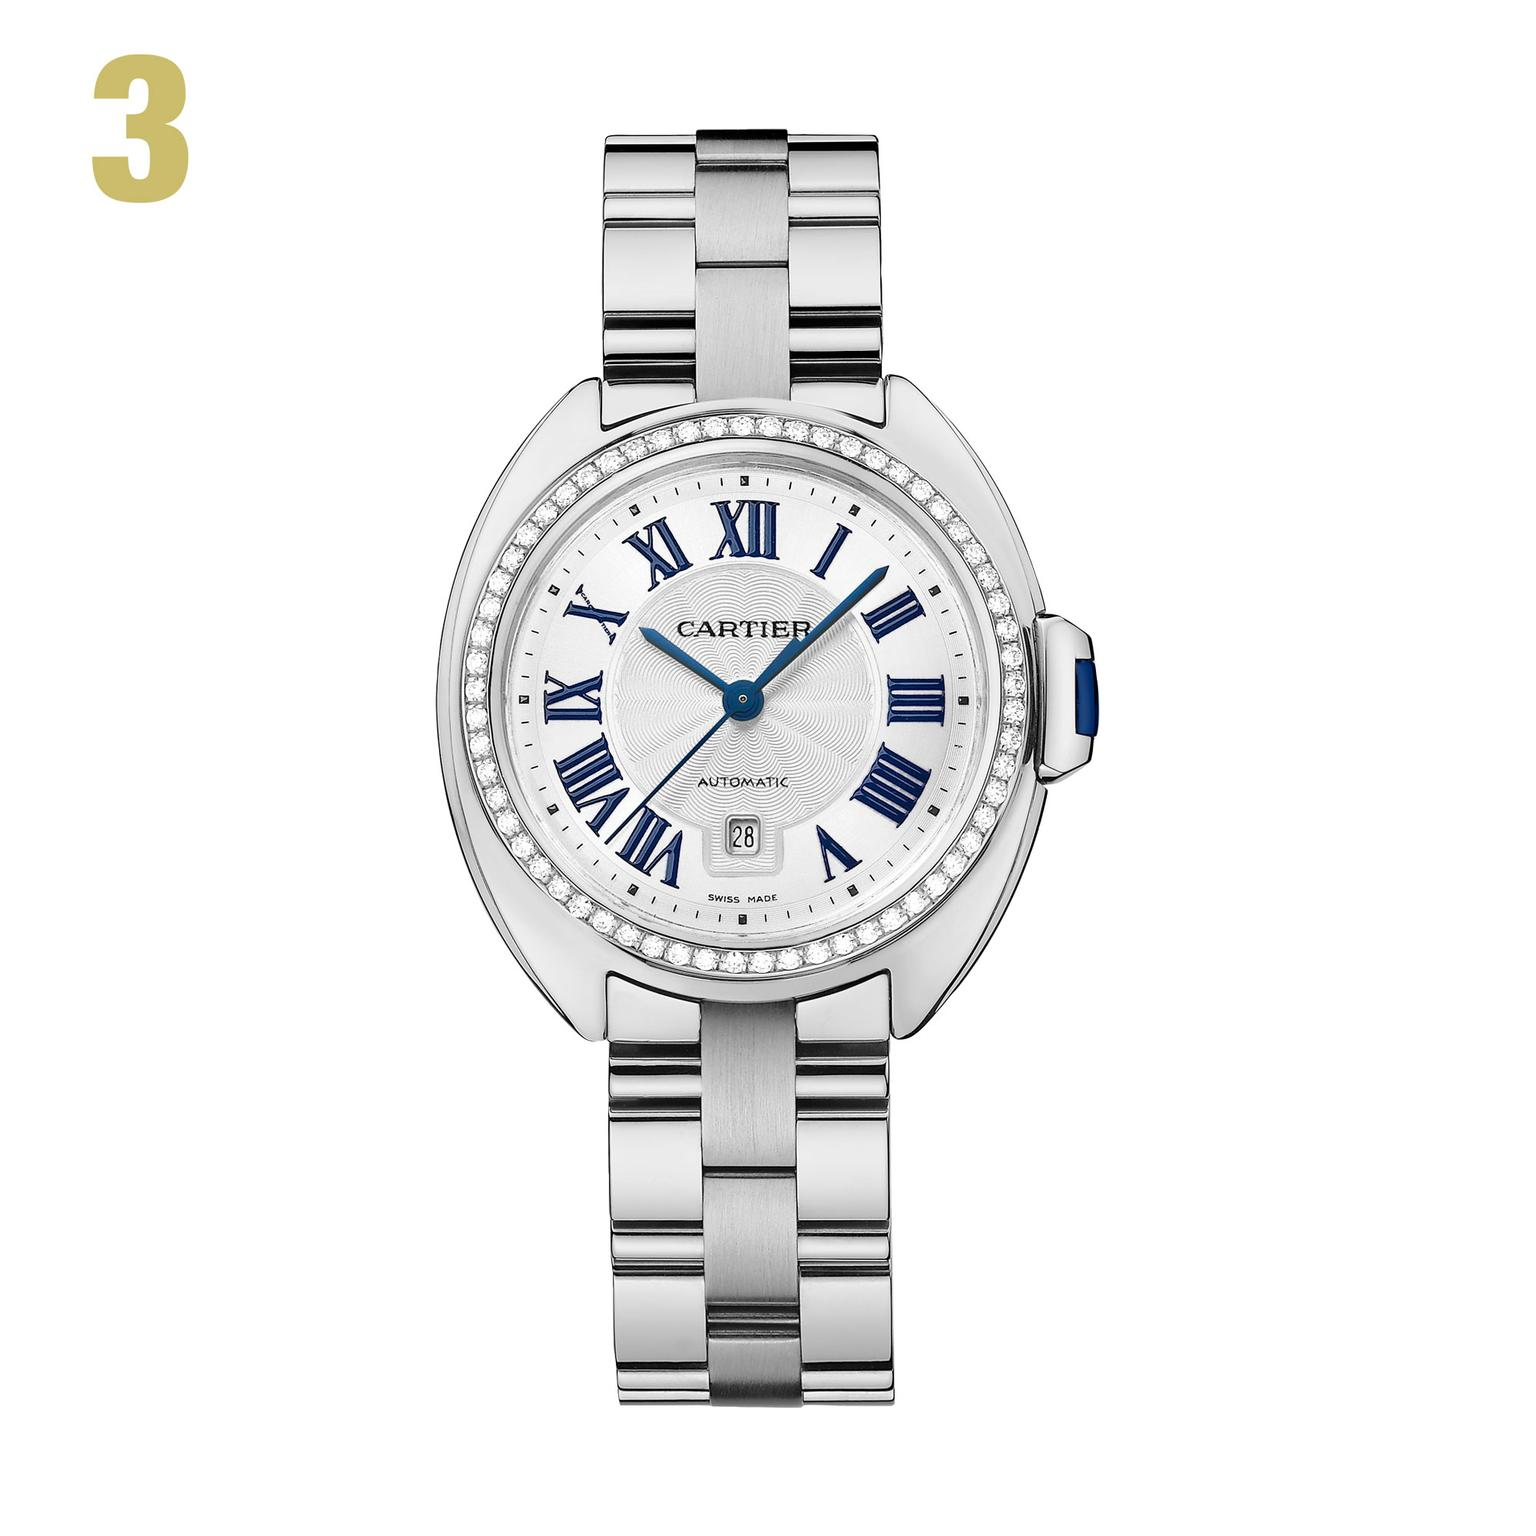 3 Cle de Cartier watch with sapphire cabochon crown and diamond-set bezel